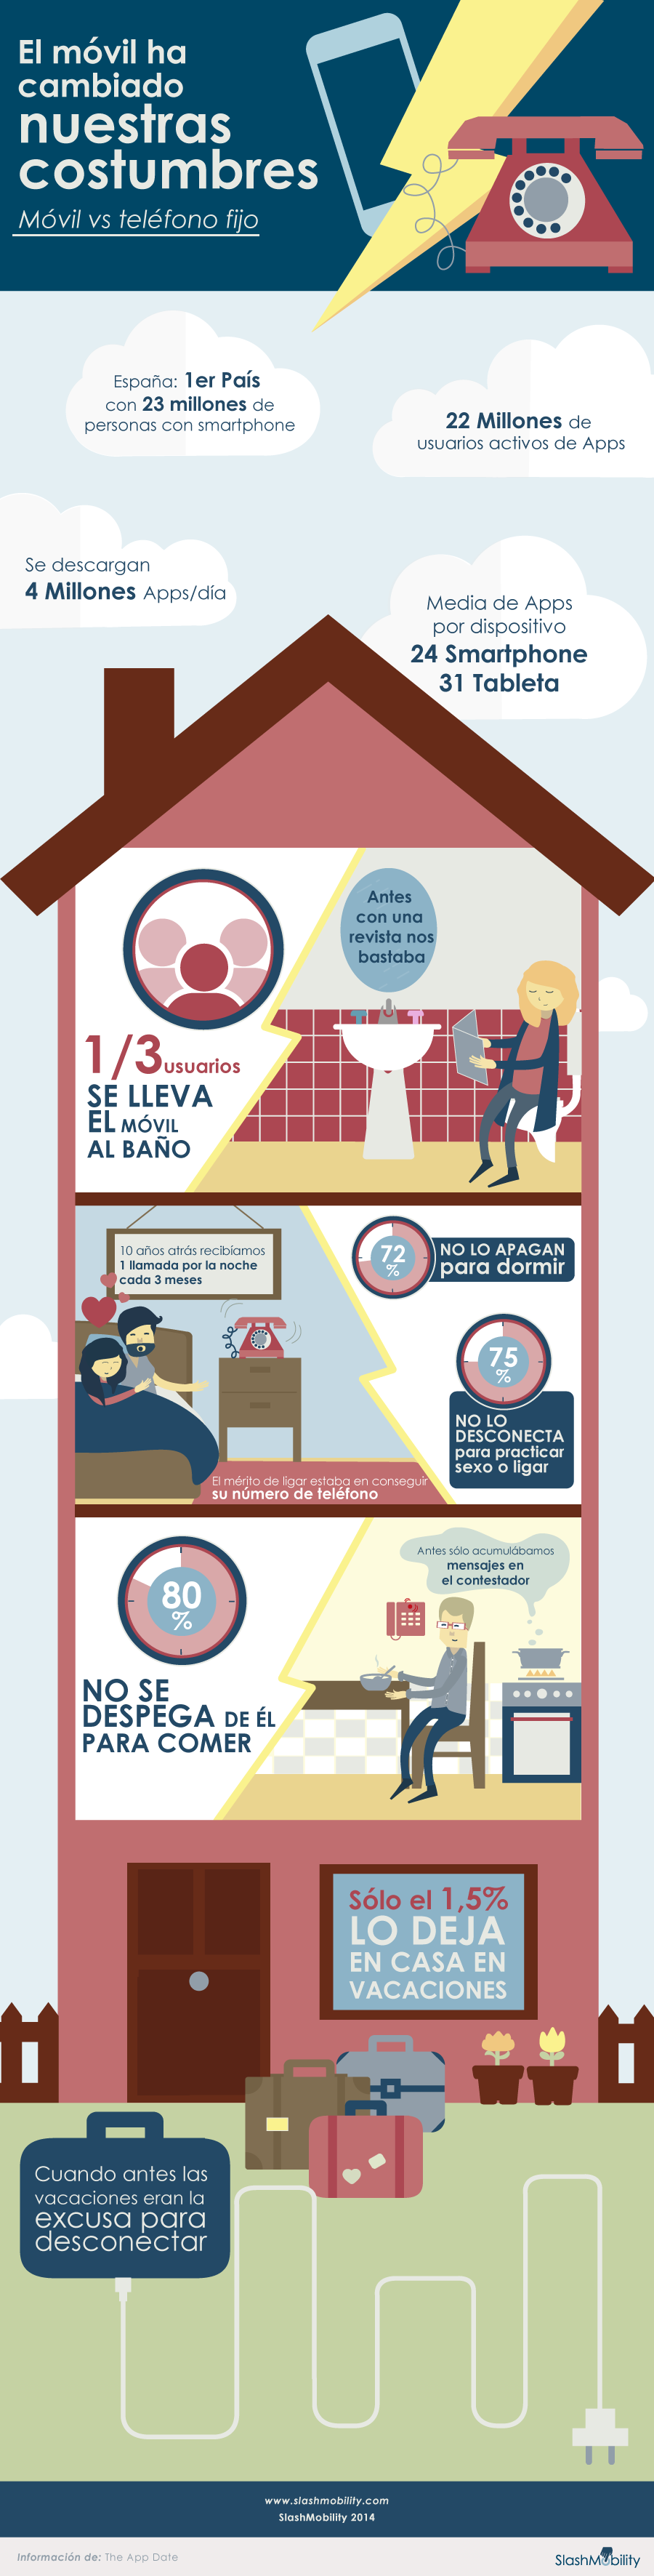 infografia-costumbres-moviles